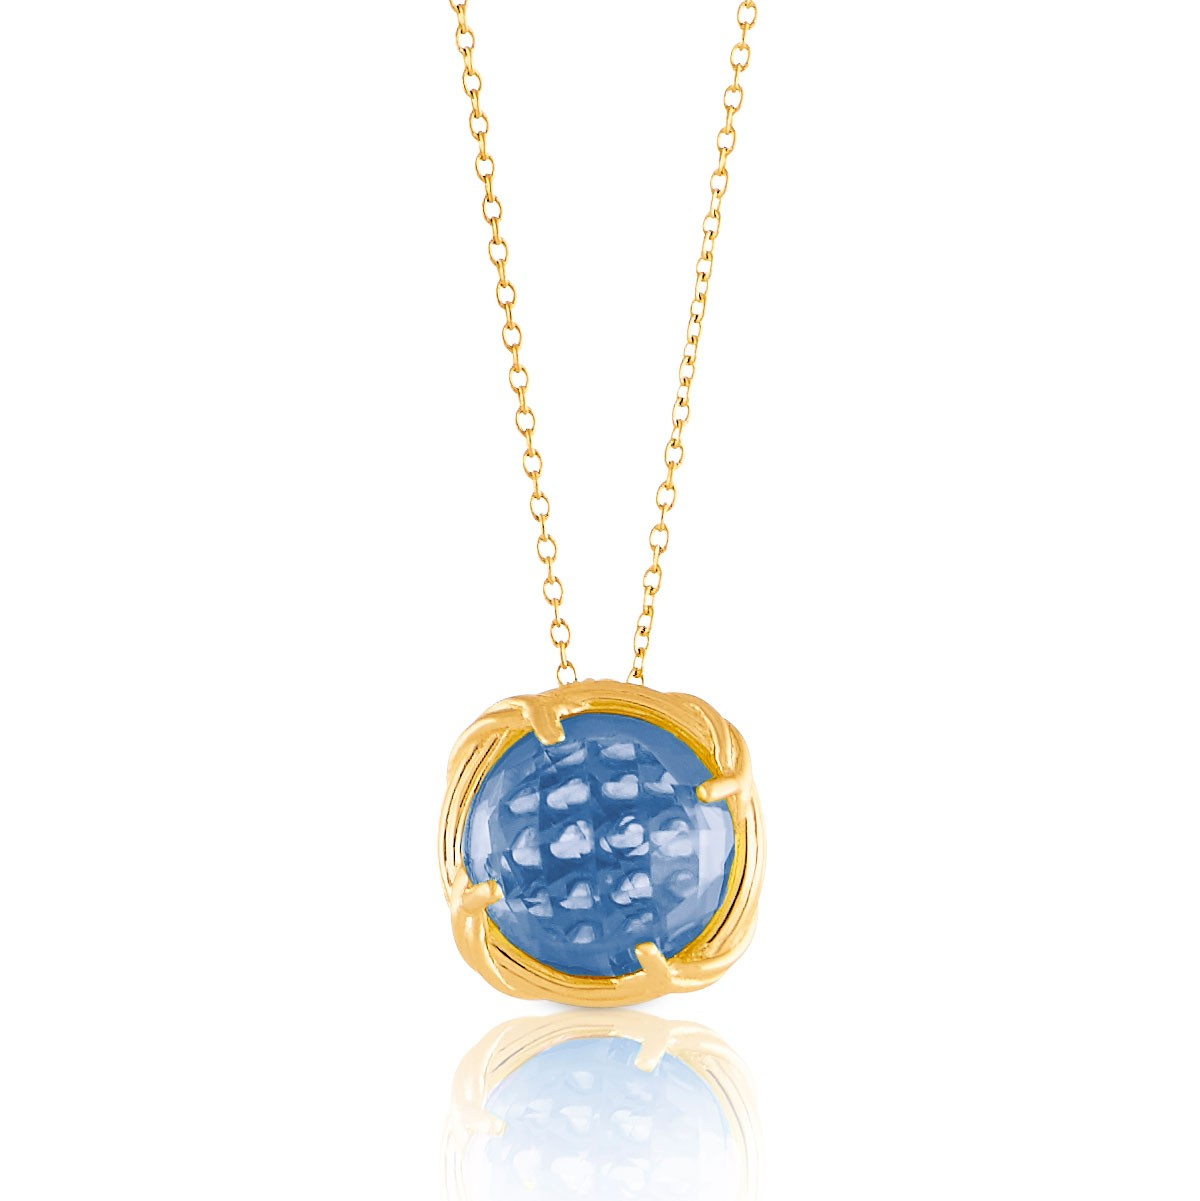 Fantasies London Blue Topaz Necklace in 18K yellow gold